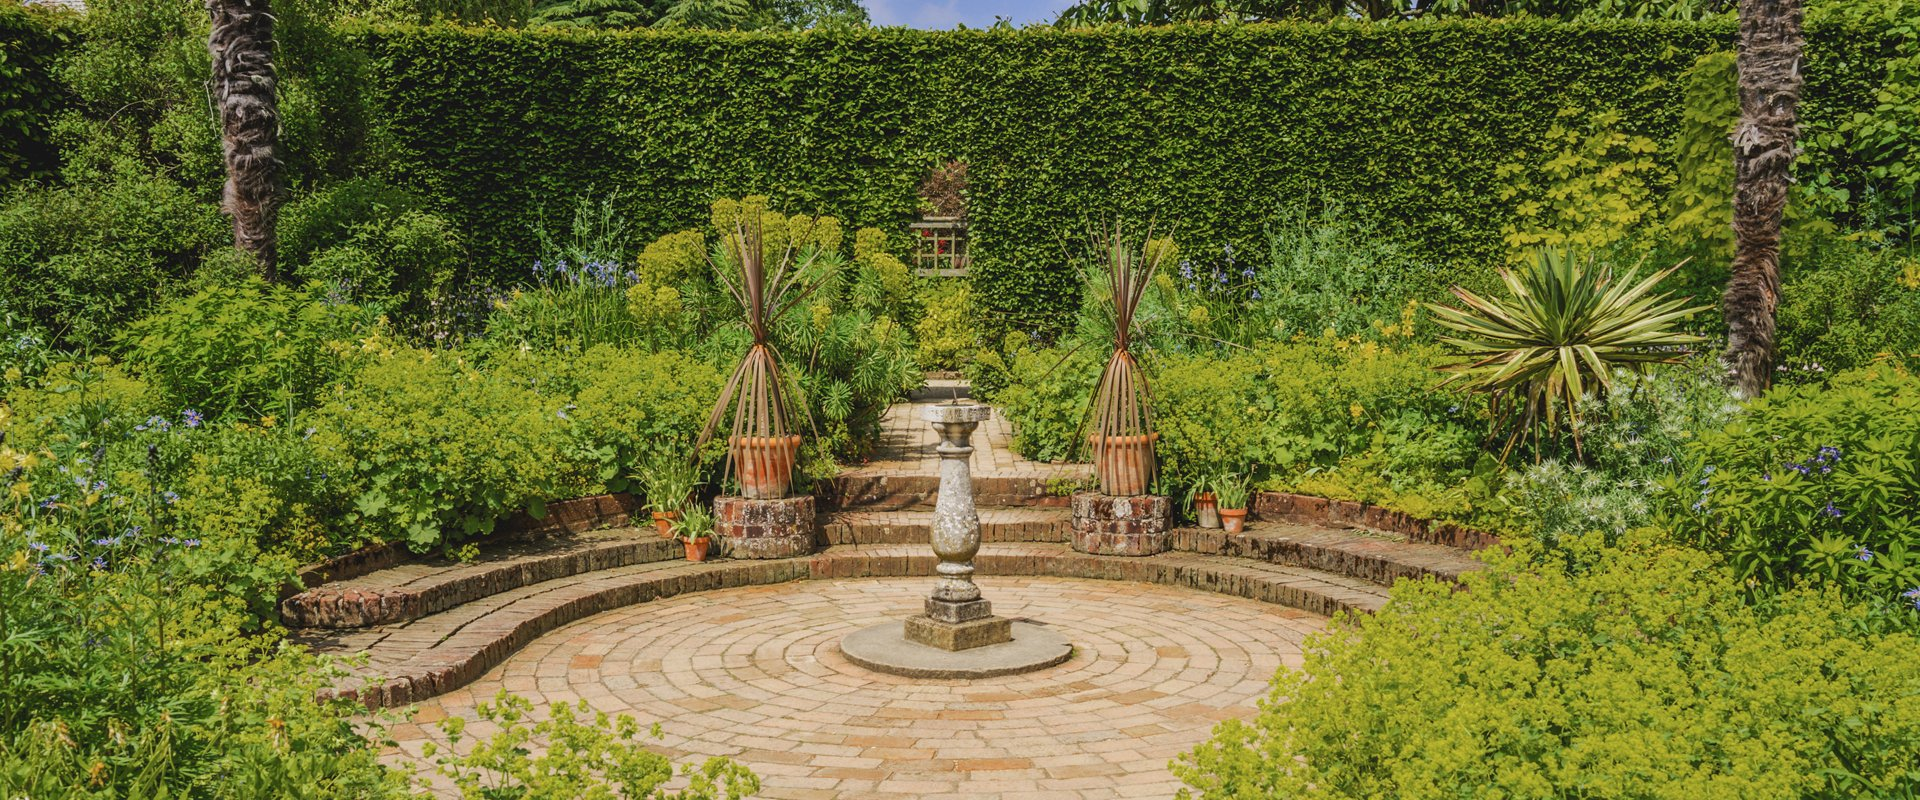 Shrubs and hedges around a paved circular area with stone sundial